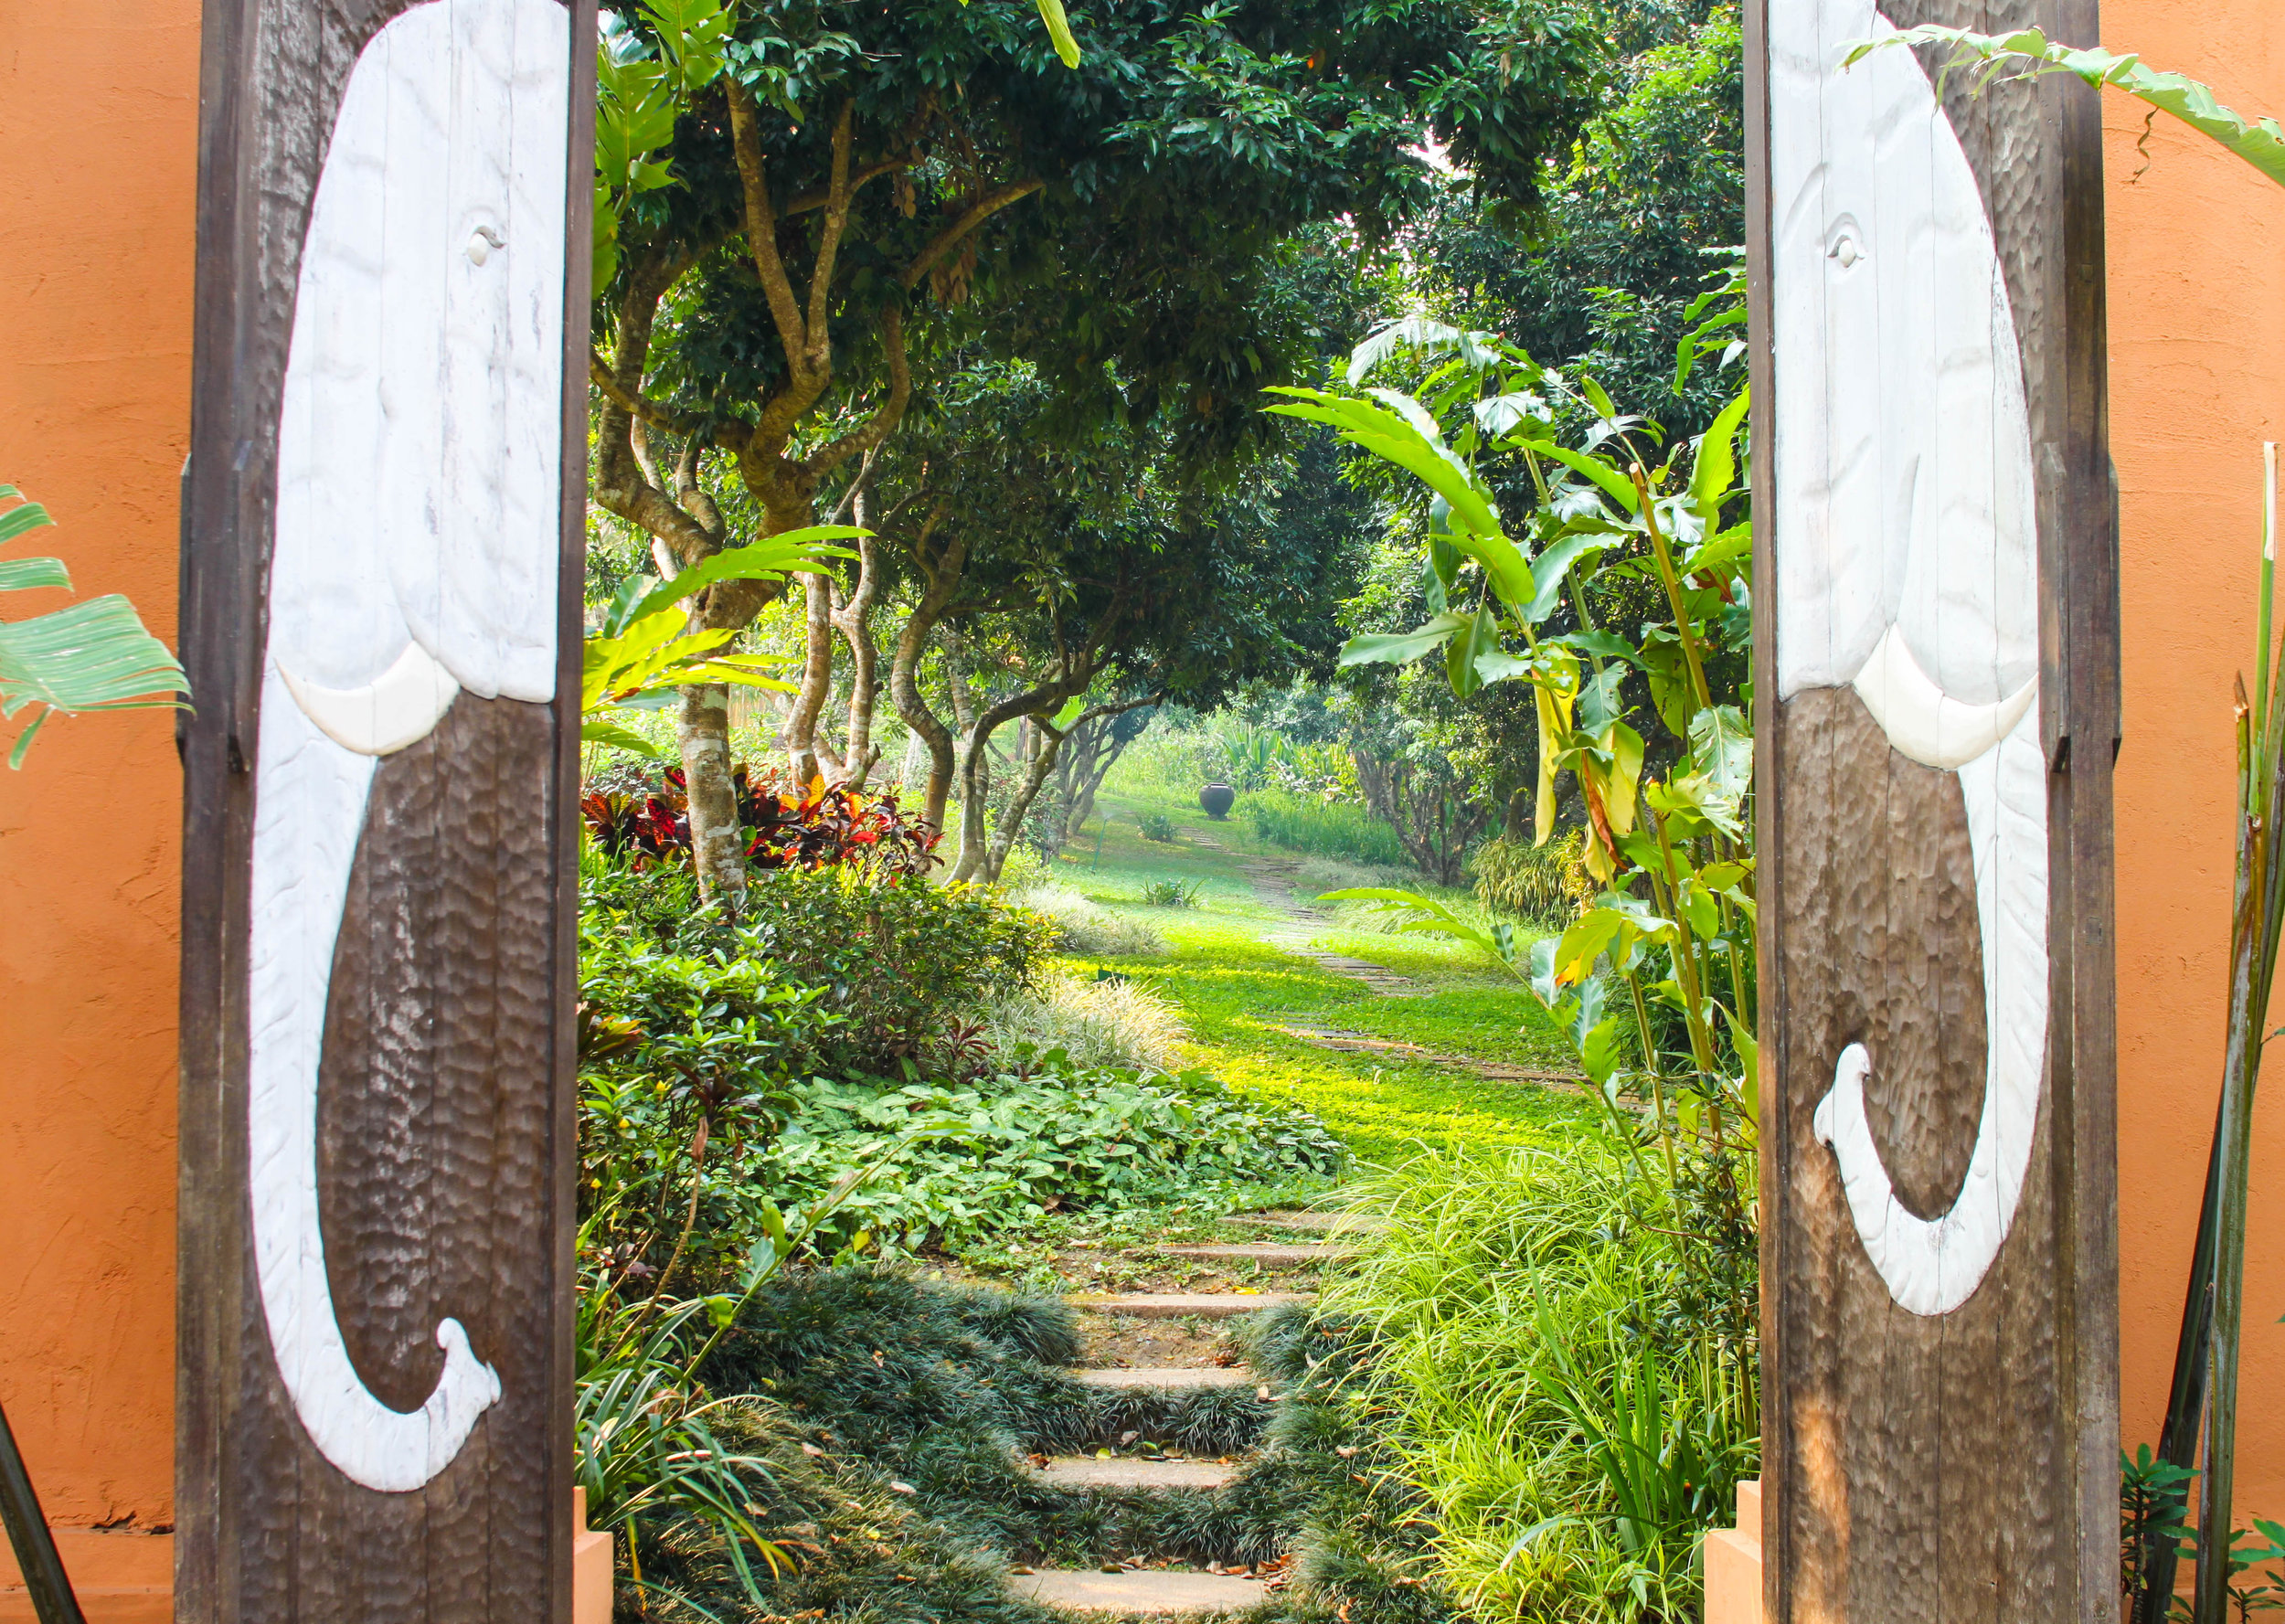 Welcome to the beautiful Anantara Golden Triangle. This place is a literal paradise.